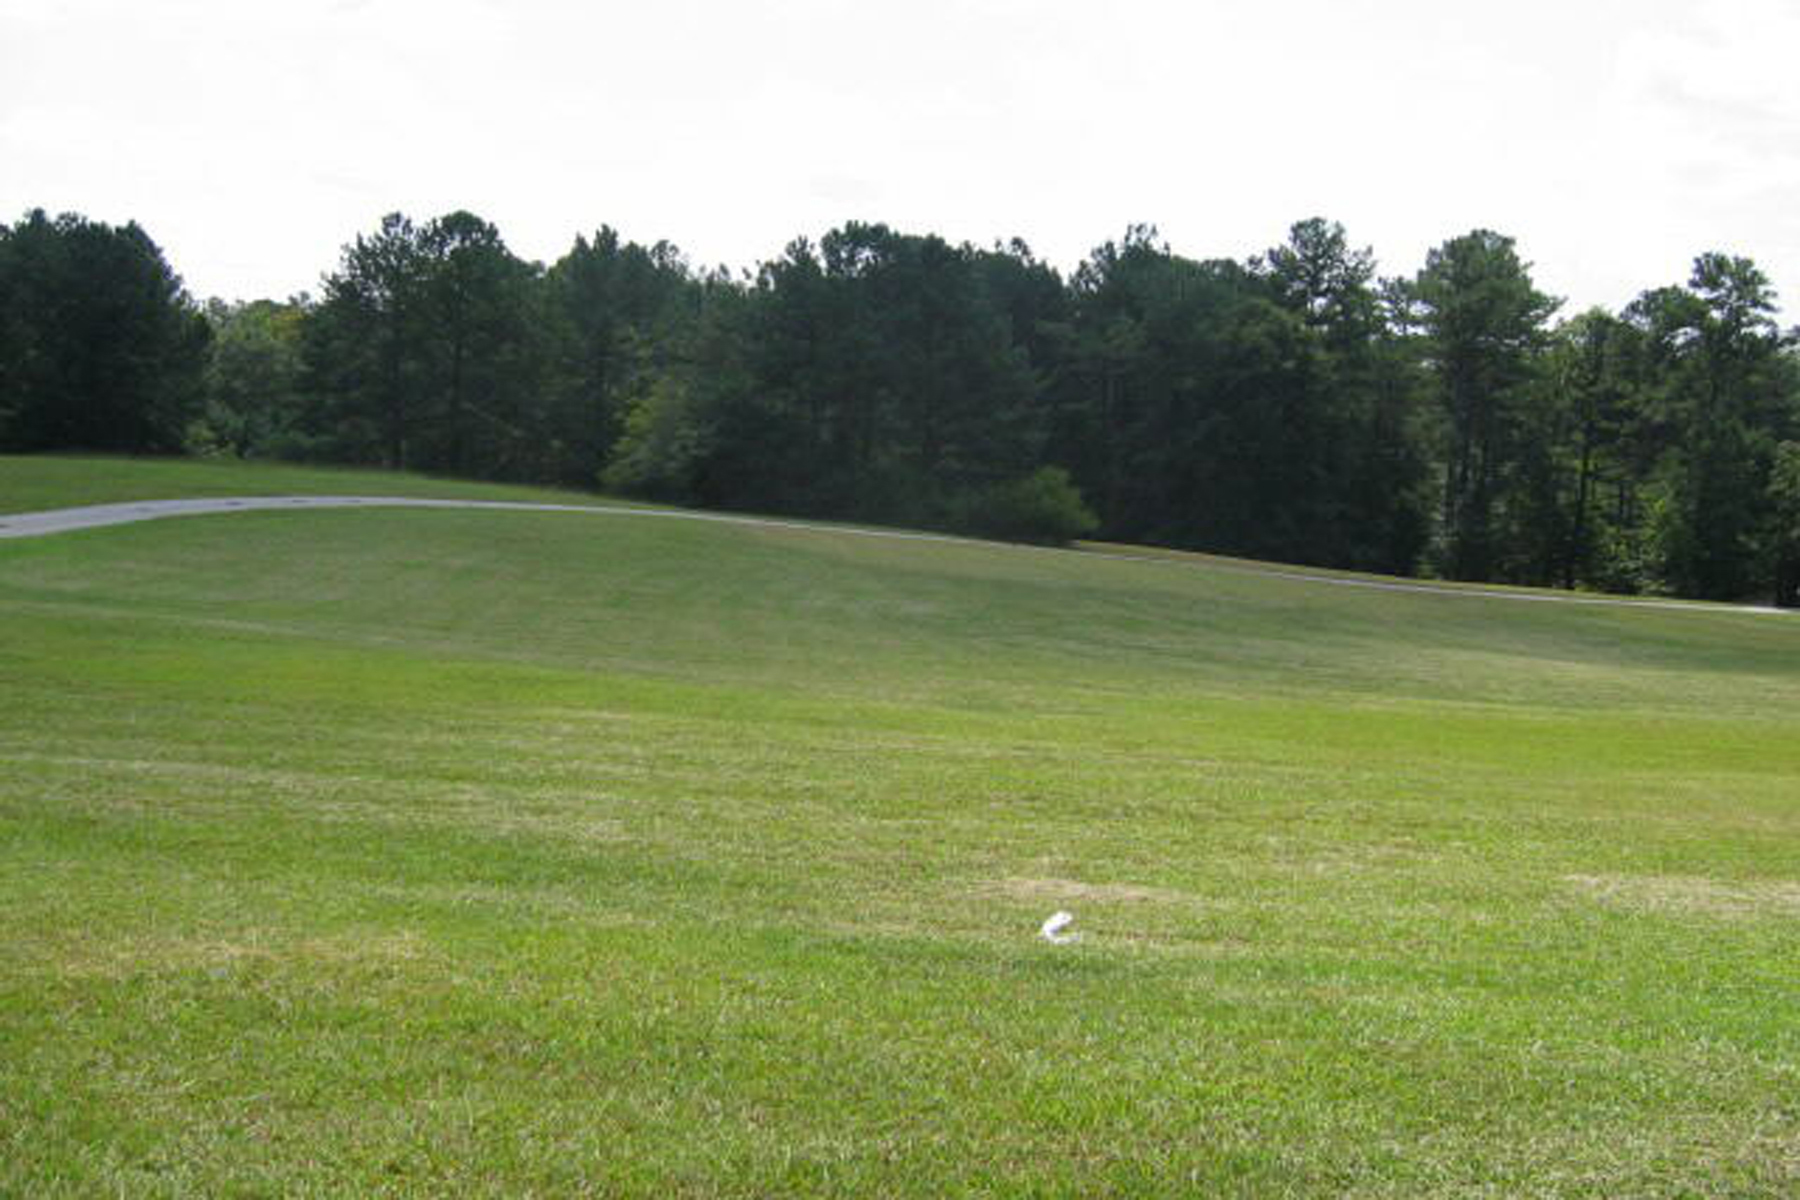 Terreno por un Venta en 12.7 Acres Across From Piedmont Fayette Hospital 1218 Highway 54 W Fayetteville, Georgia 30215 Estados Unidos